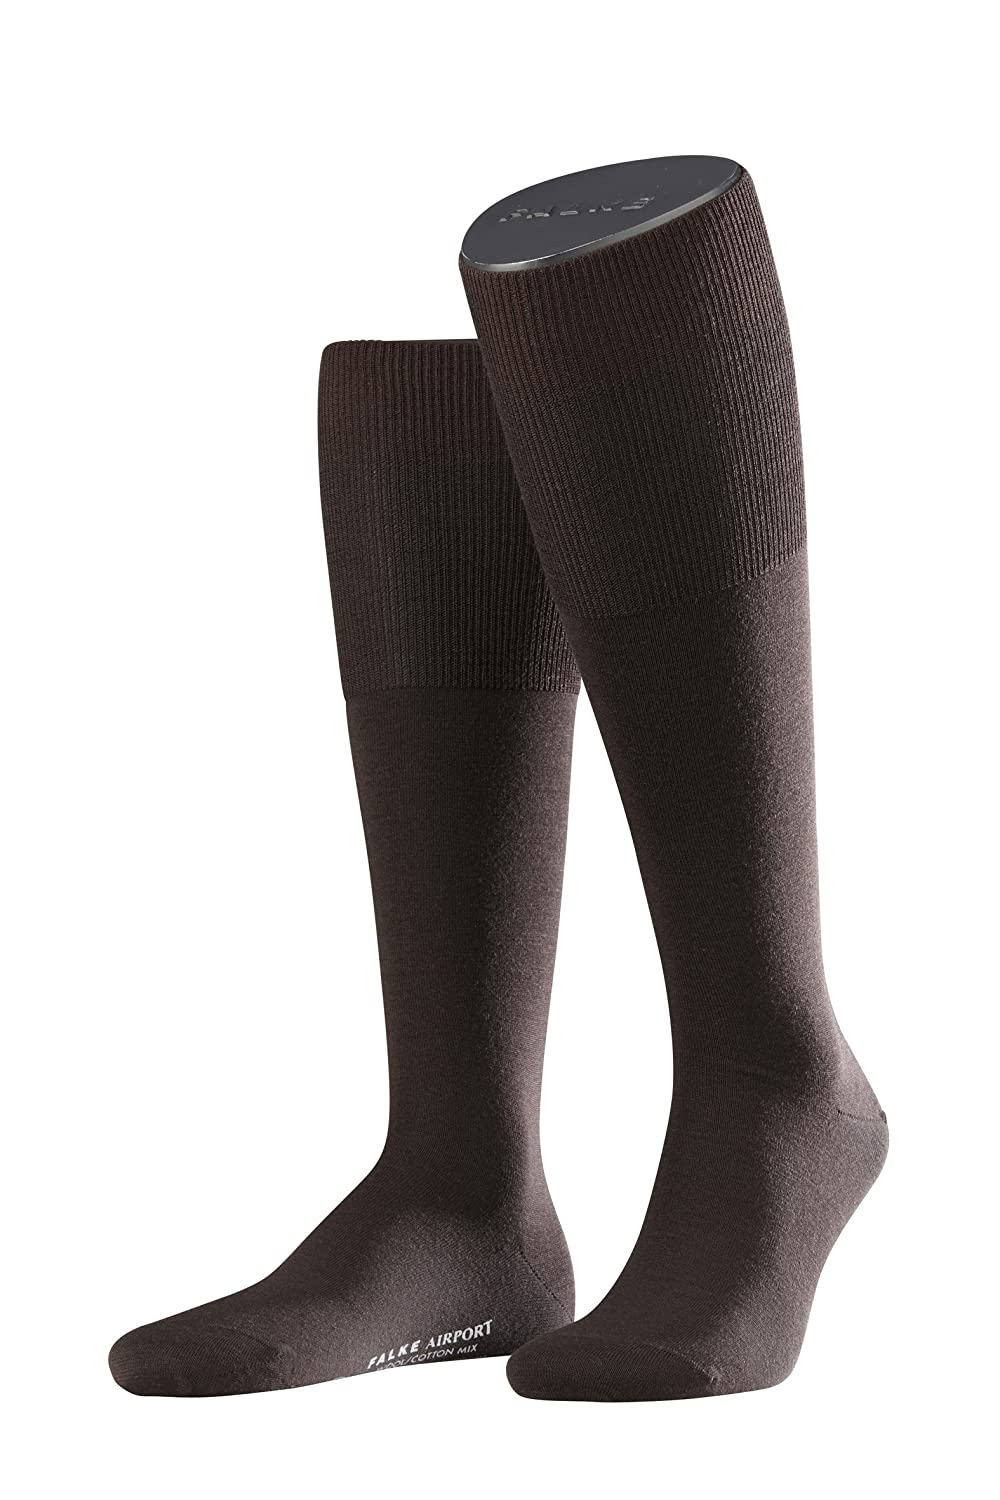 Falke Airport 15435 Men's Knee Socks